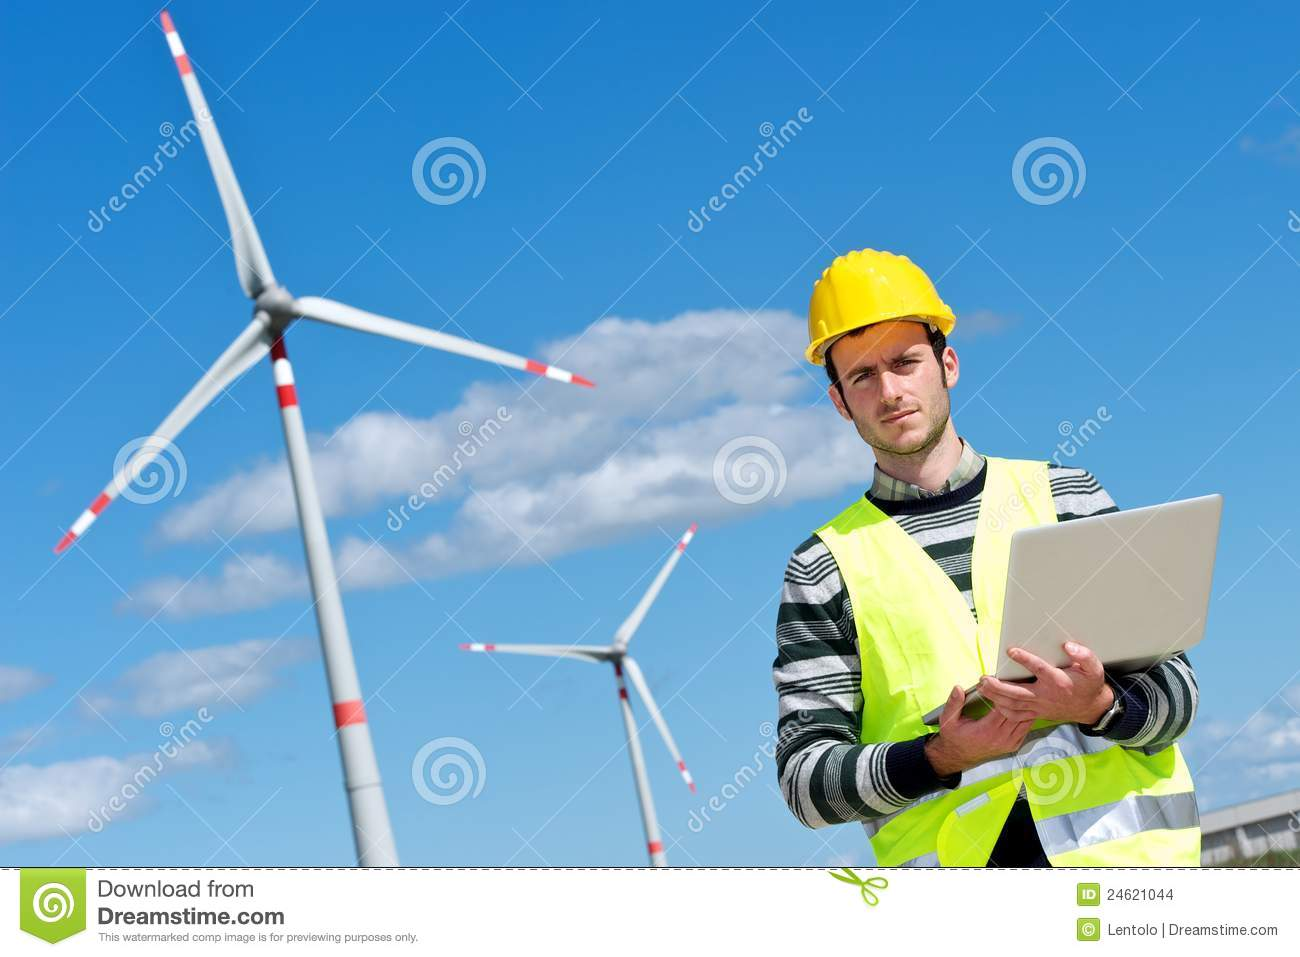 Engineer in Wind Turbine Power Generator Station